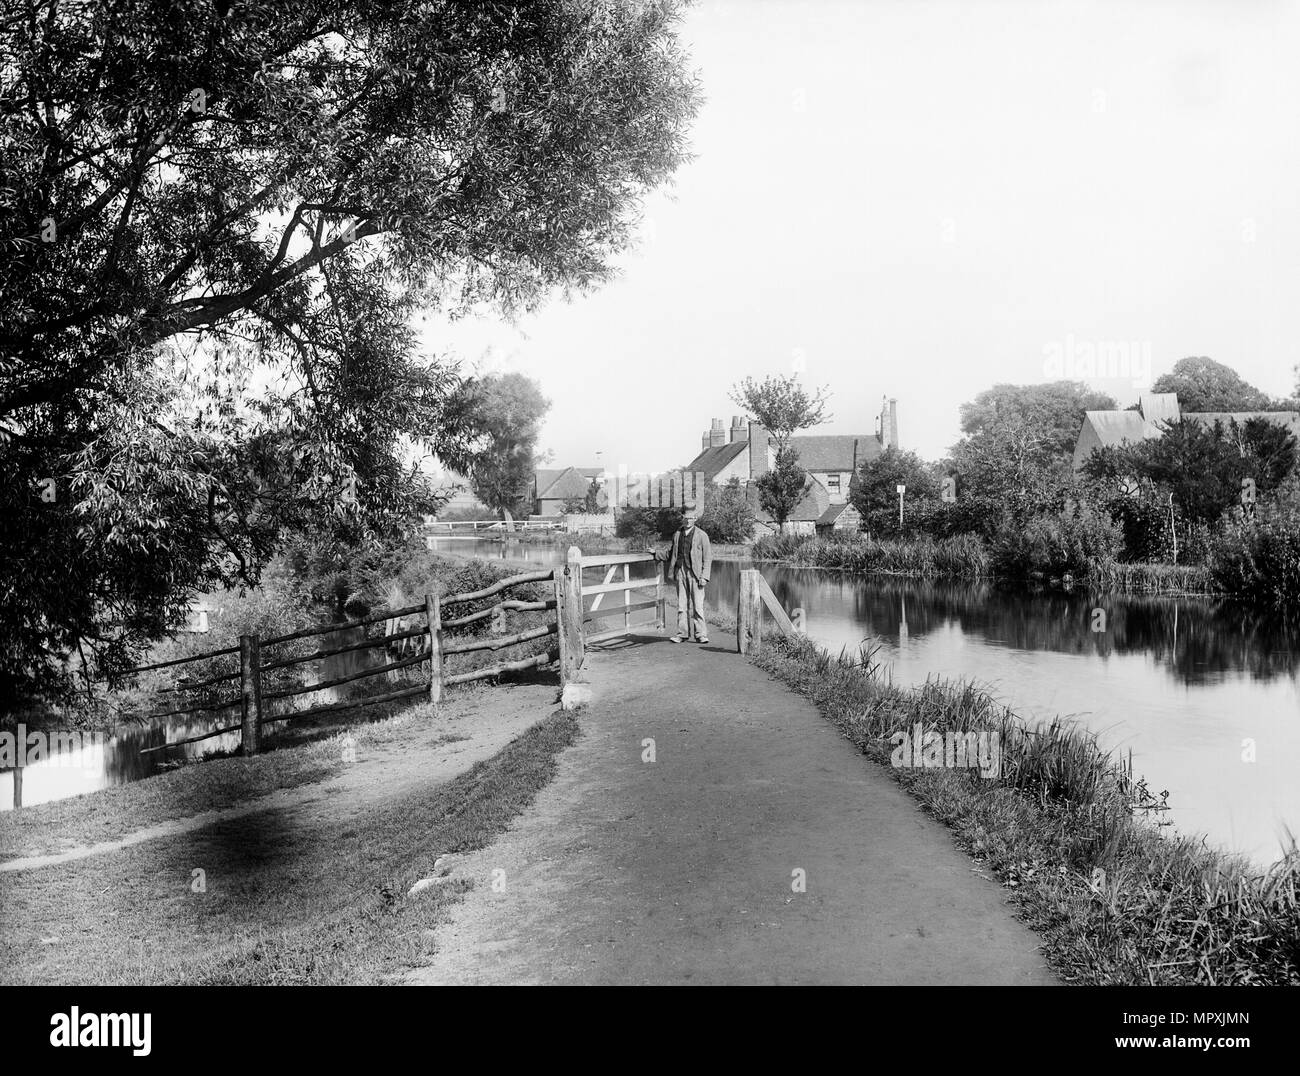 Towpath of the Kennet and Avon Canal, Greenham, near Newbury, Berkshire, 1890. Artist: Henry Taunt. - Stock Image